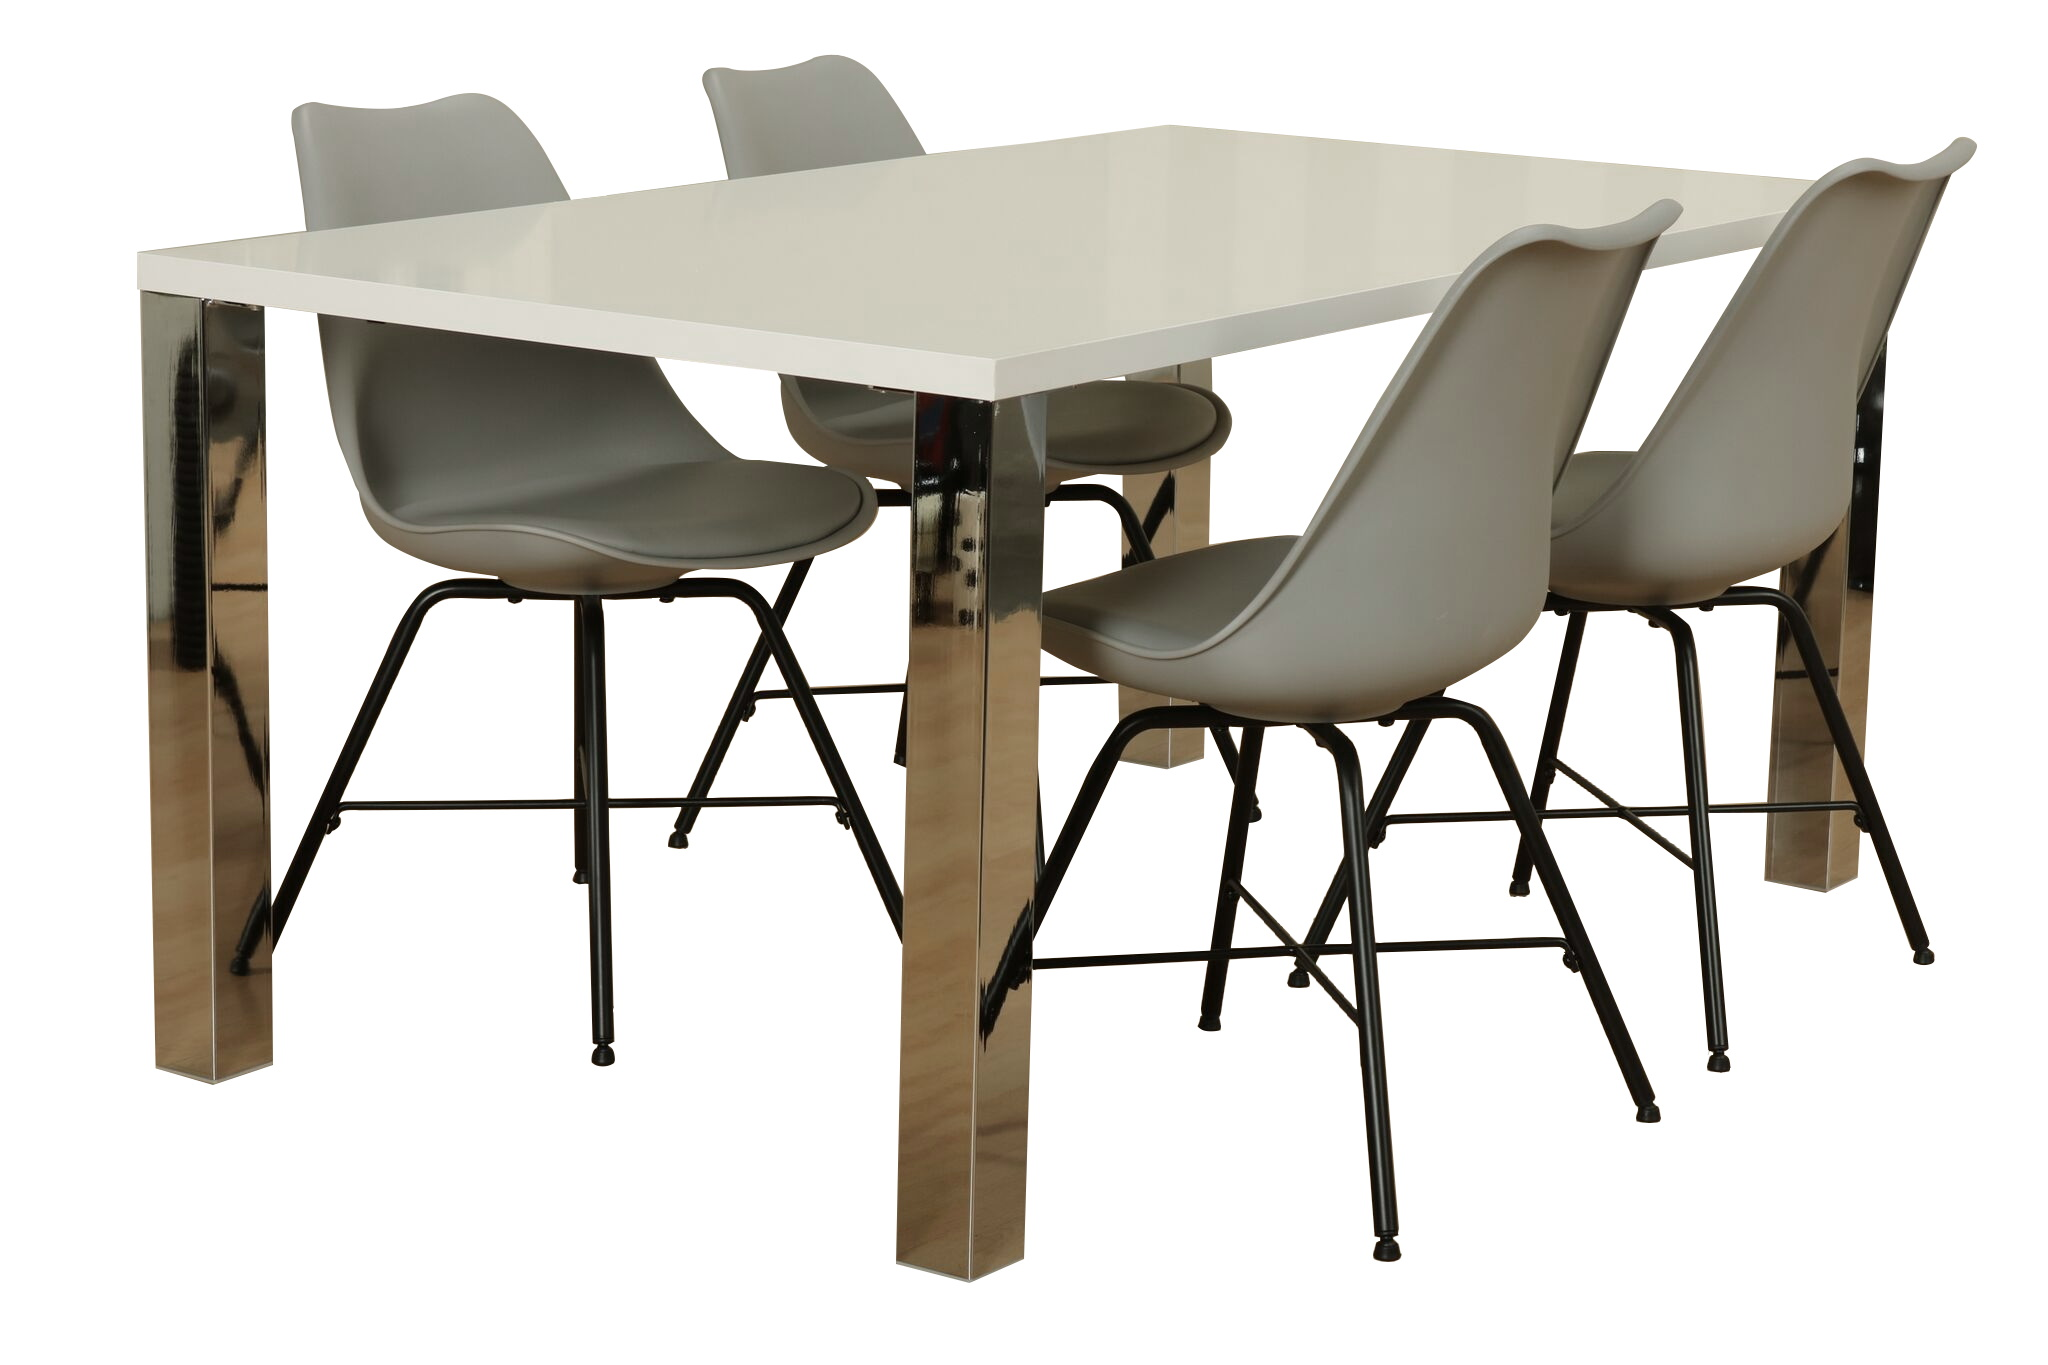 Sthle esszimmer wei awesome erset formici wei with sthle for Designer stuhle sale